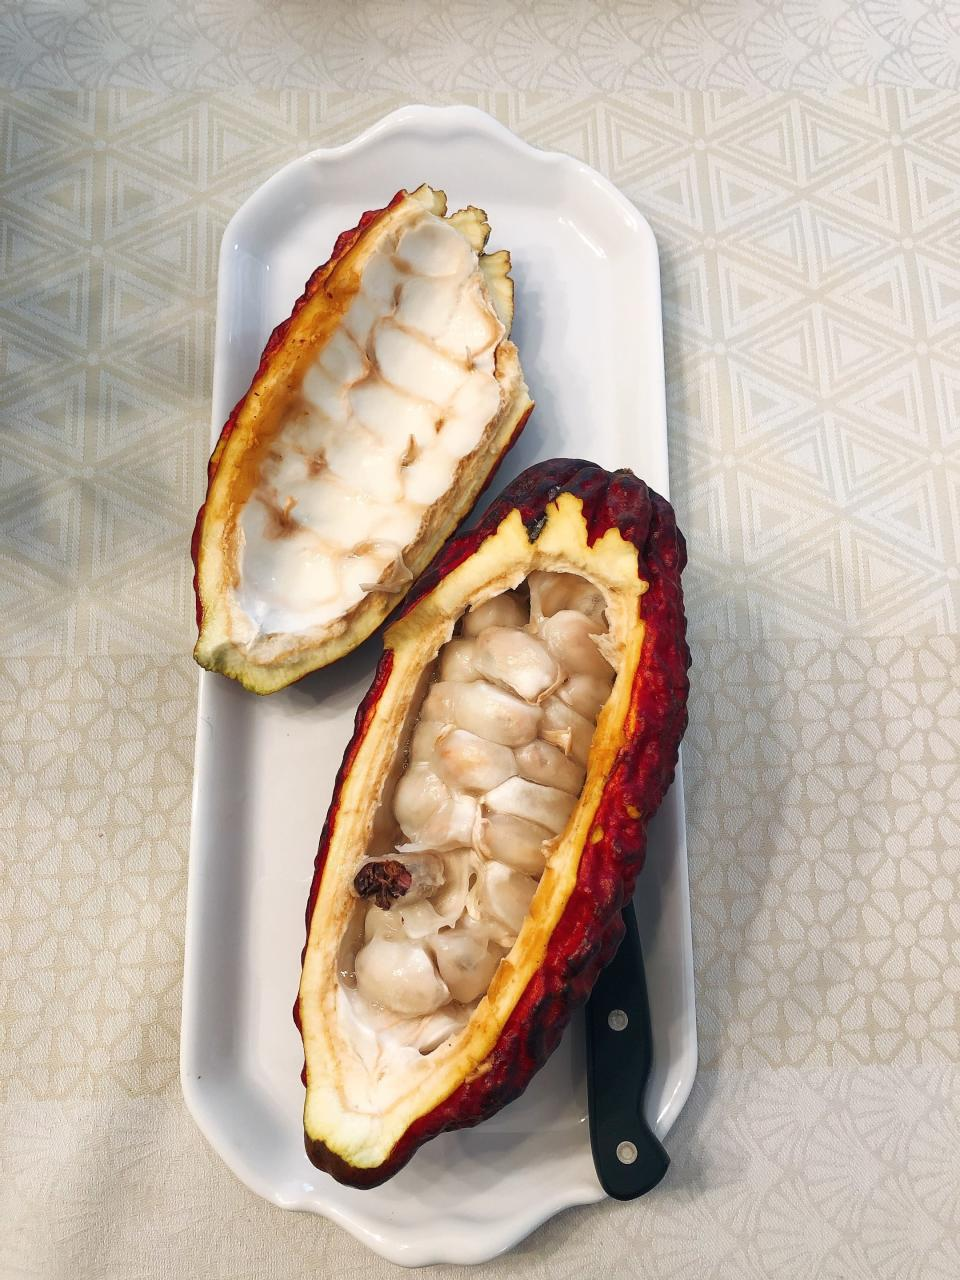 A fresh cacao pod appears on a platter in Alexandria, Va., on Oct. 1, 2020. There's more to cacao than chocolate. The cacao fruit and pulp can be used for cooking as well. (Elizabeth Karmel via AP)